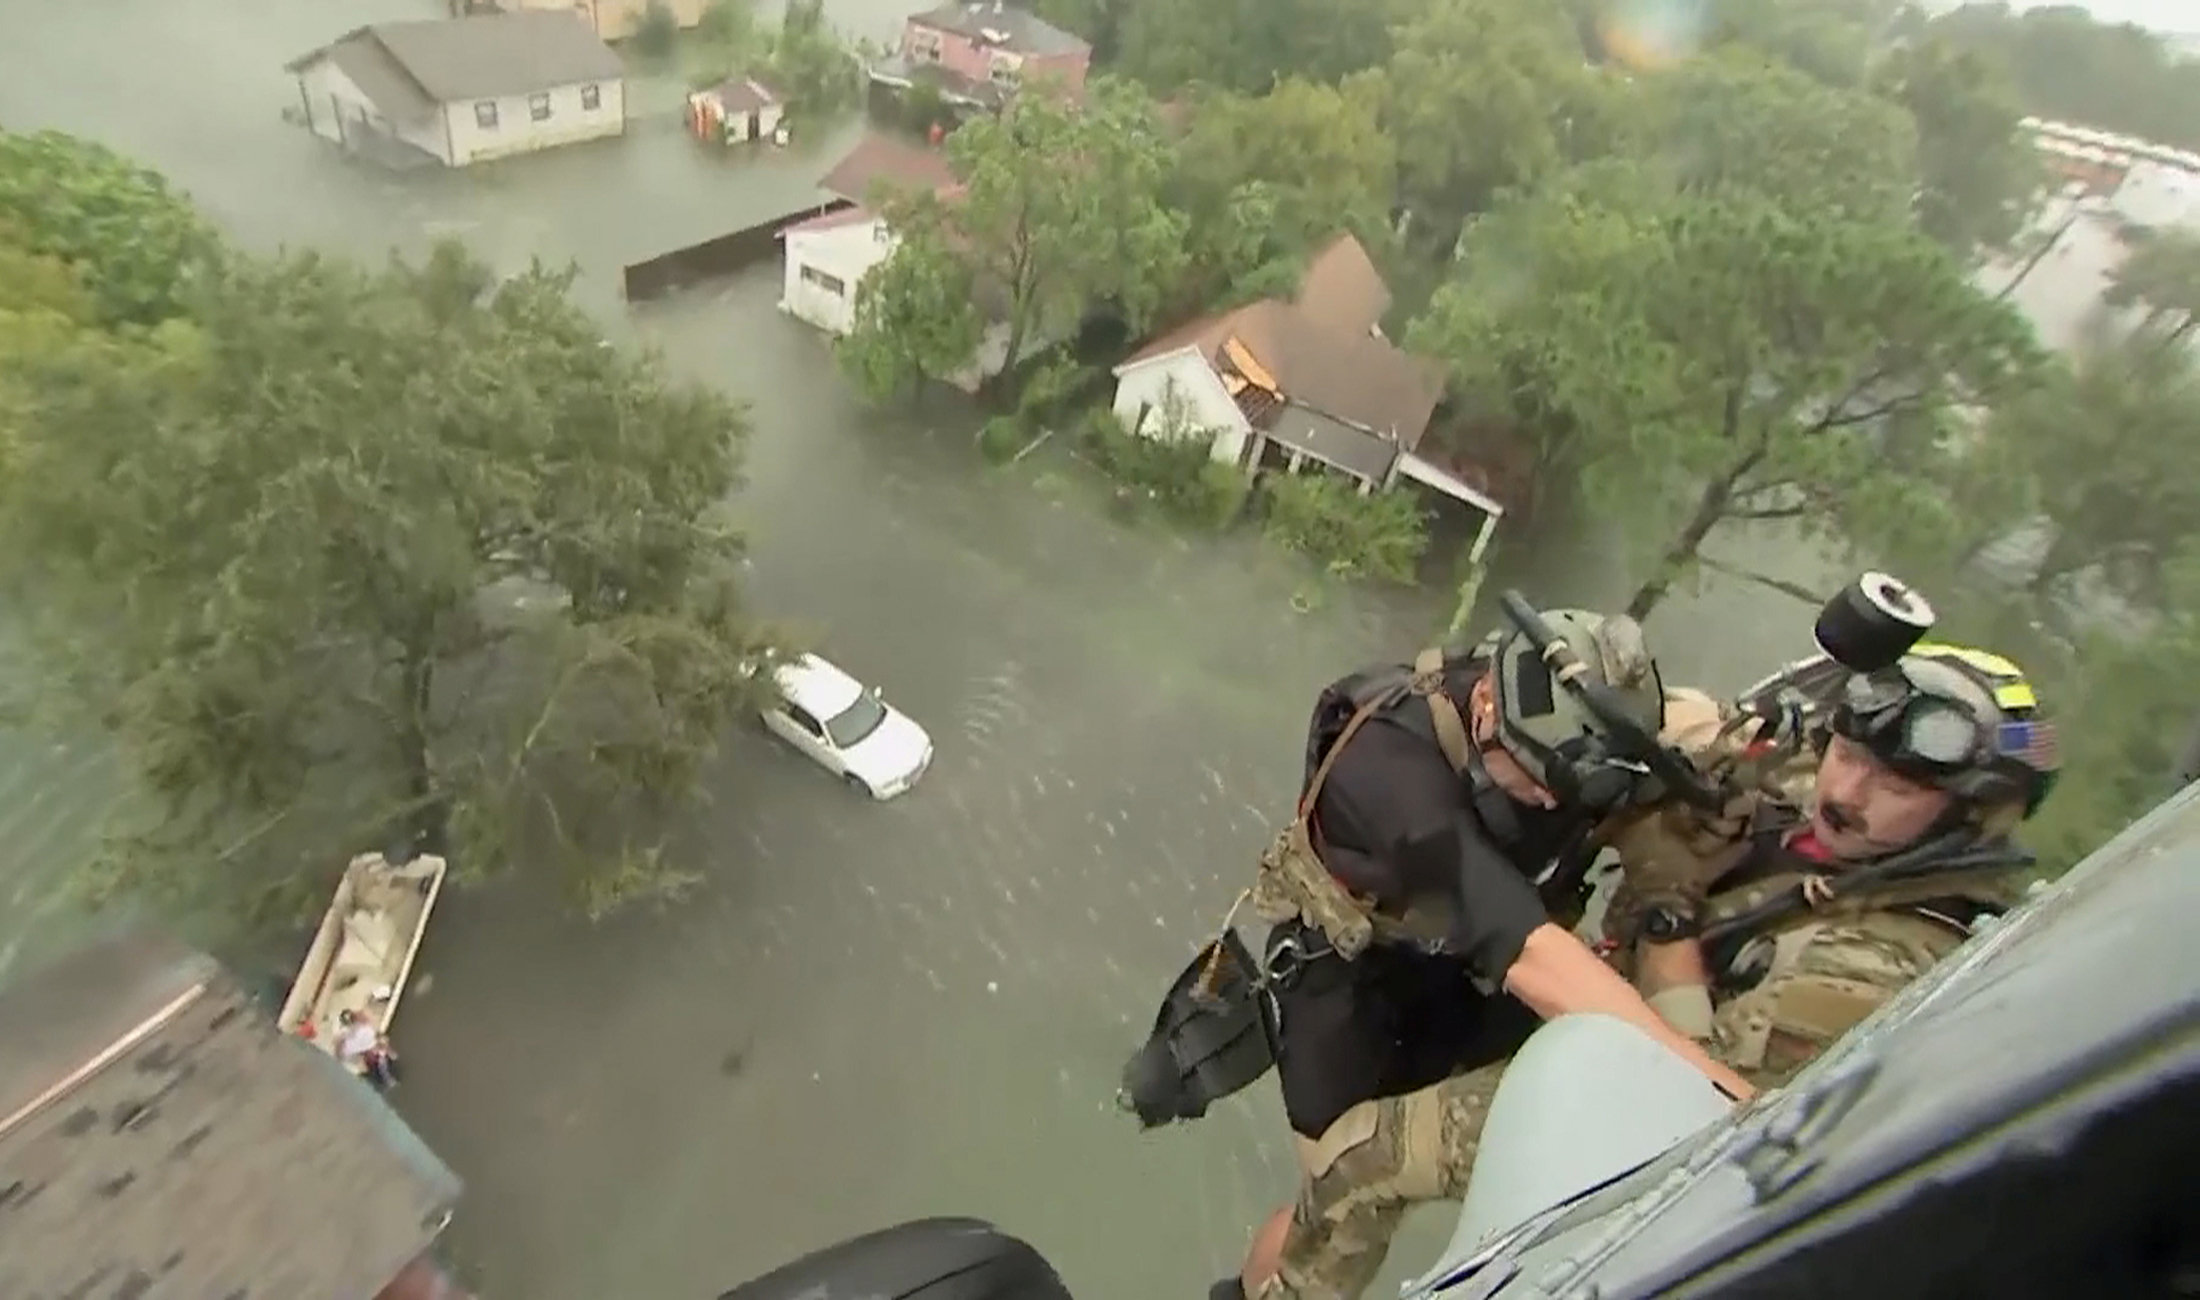 Two rescuers from U.S. Navy Helicopter Sea Combat Squadron 7 are lowered to a house after Tropical Storm Harvey flooded a neighborhood in Beaumont, Texas, U.S. in a still image from video August 30, 2017. U.S. Navy/Petty Officer 1st Class Ernest Scott/Handout via REUTERS